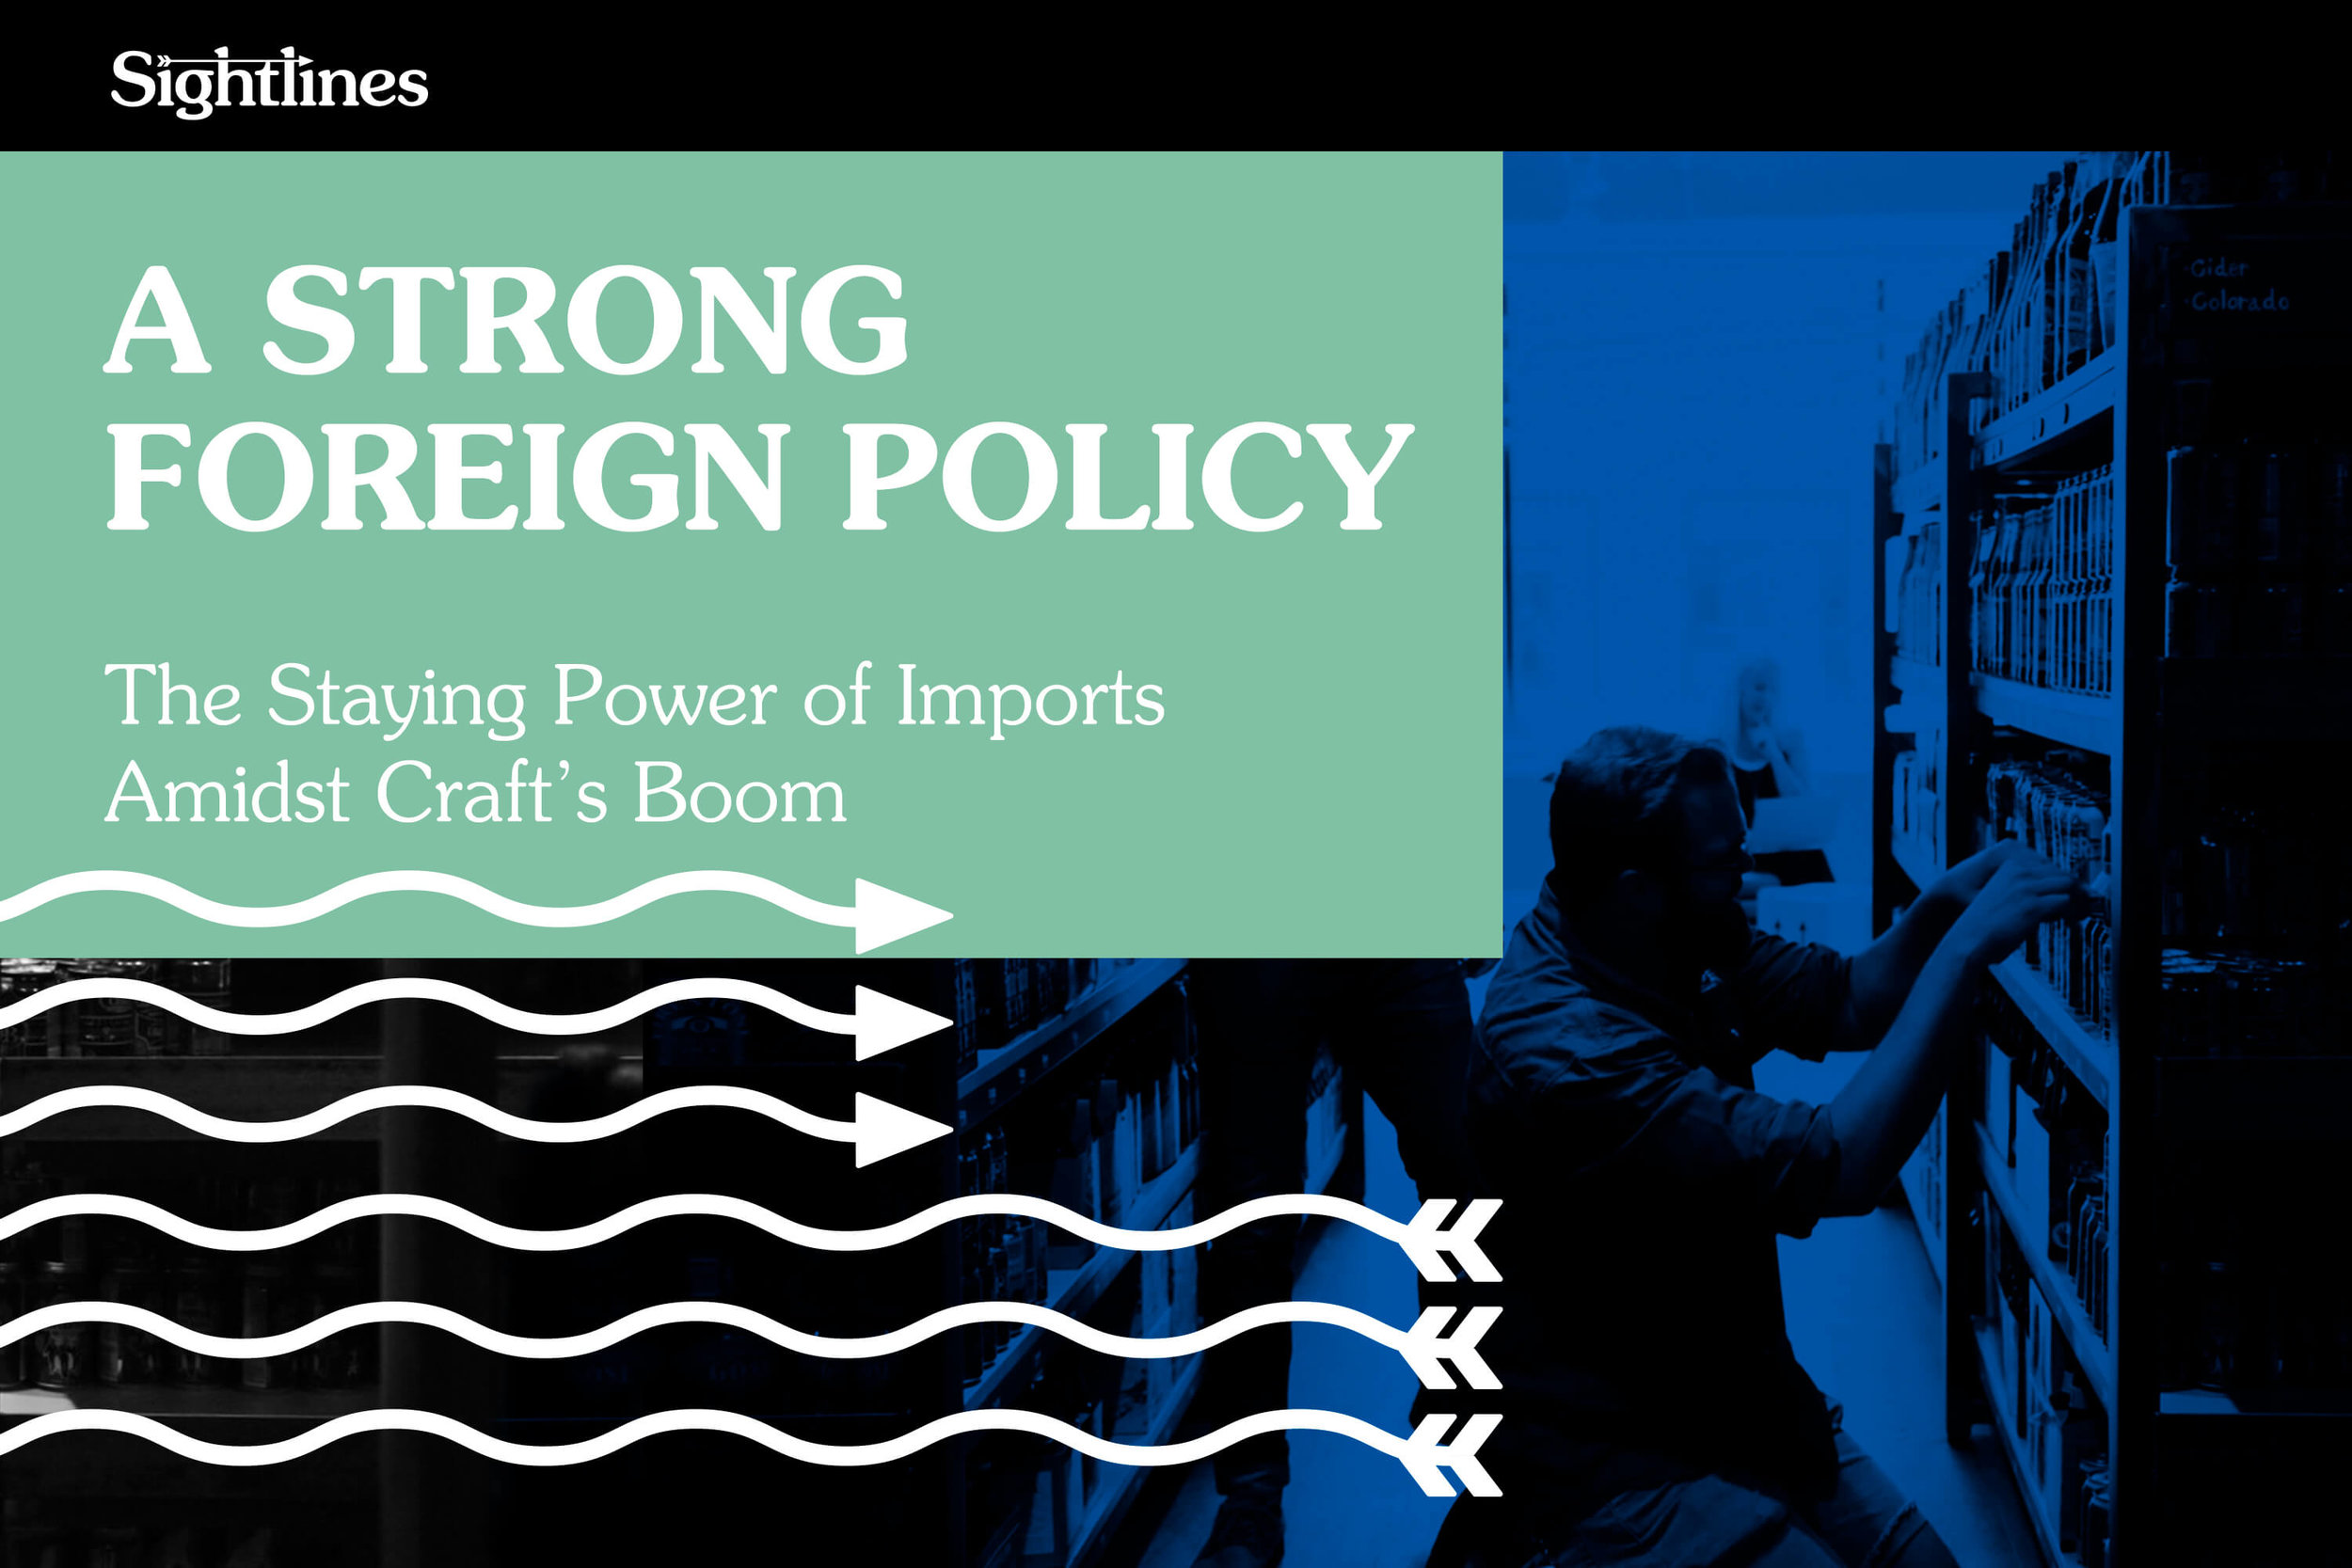 AStrongForeignPolicy_Cover.jpg